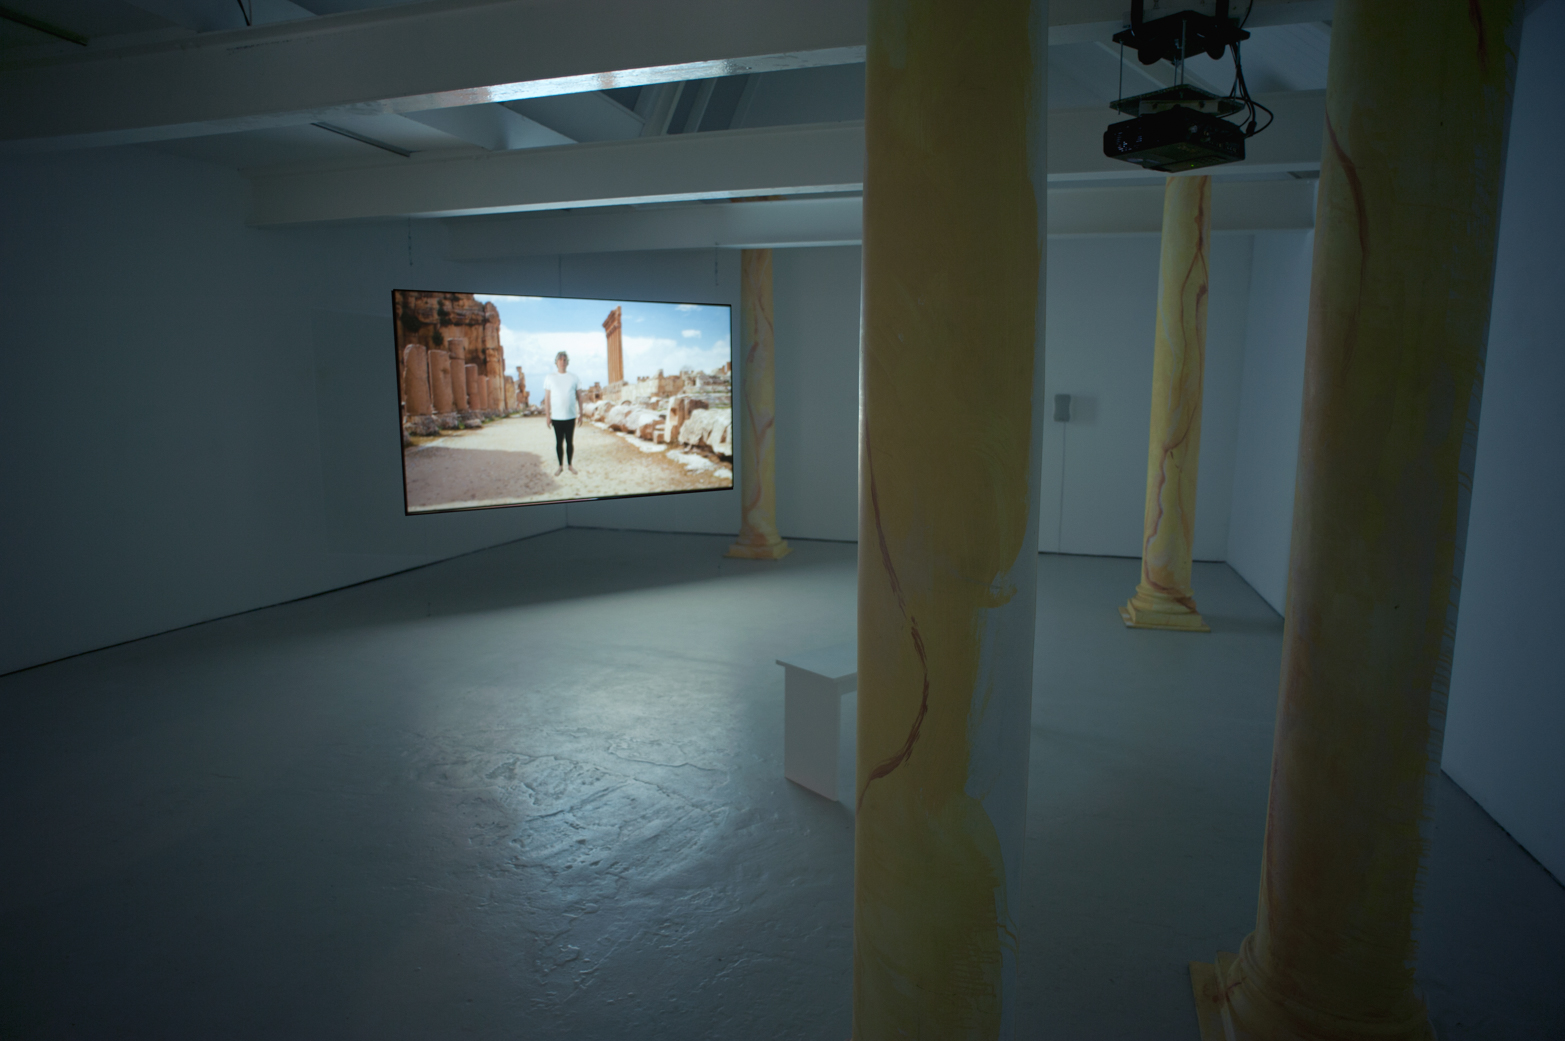 Rehana Zaman, What an artist dies in me/ Exit the Emperor Nero, 2013. Installation view, Outpost, Norwich.